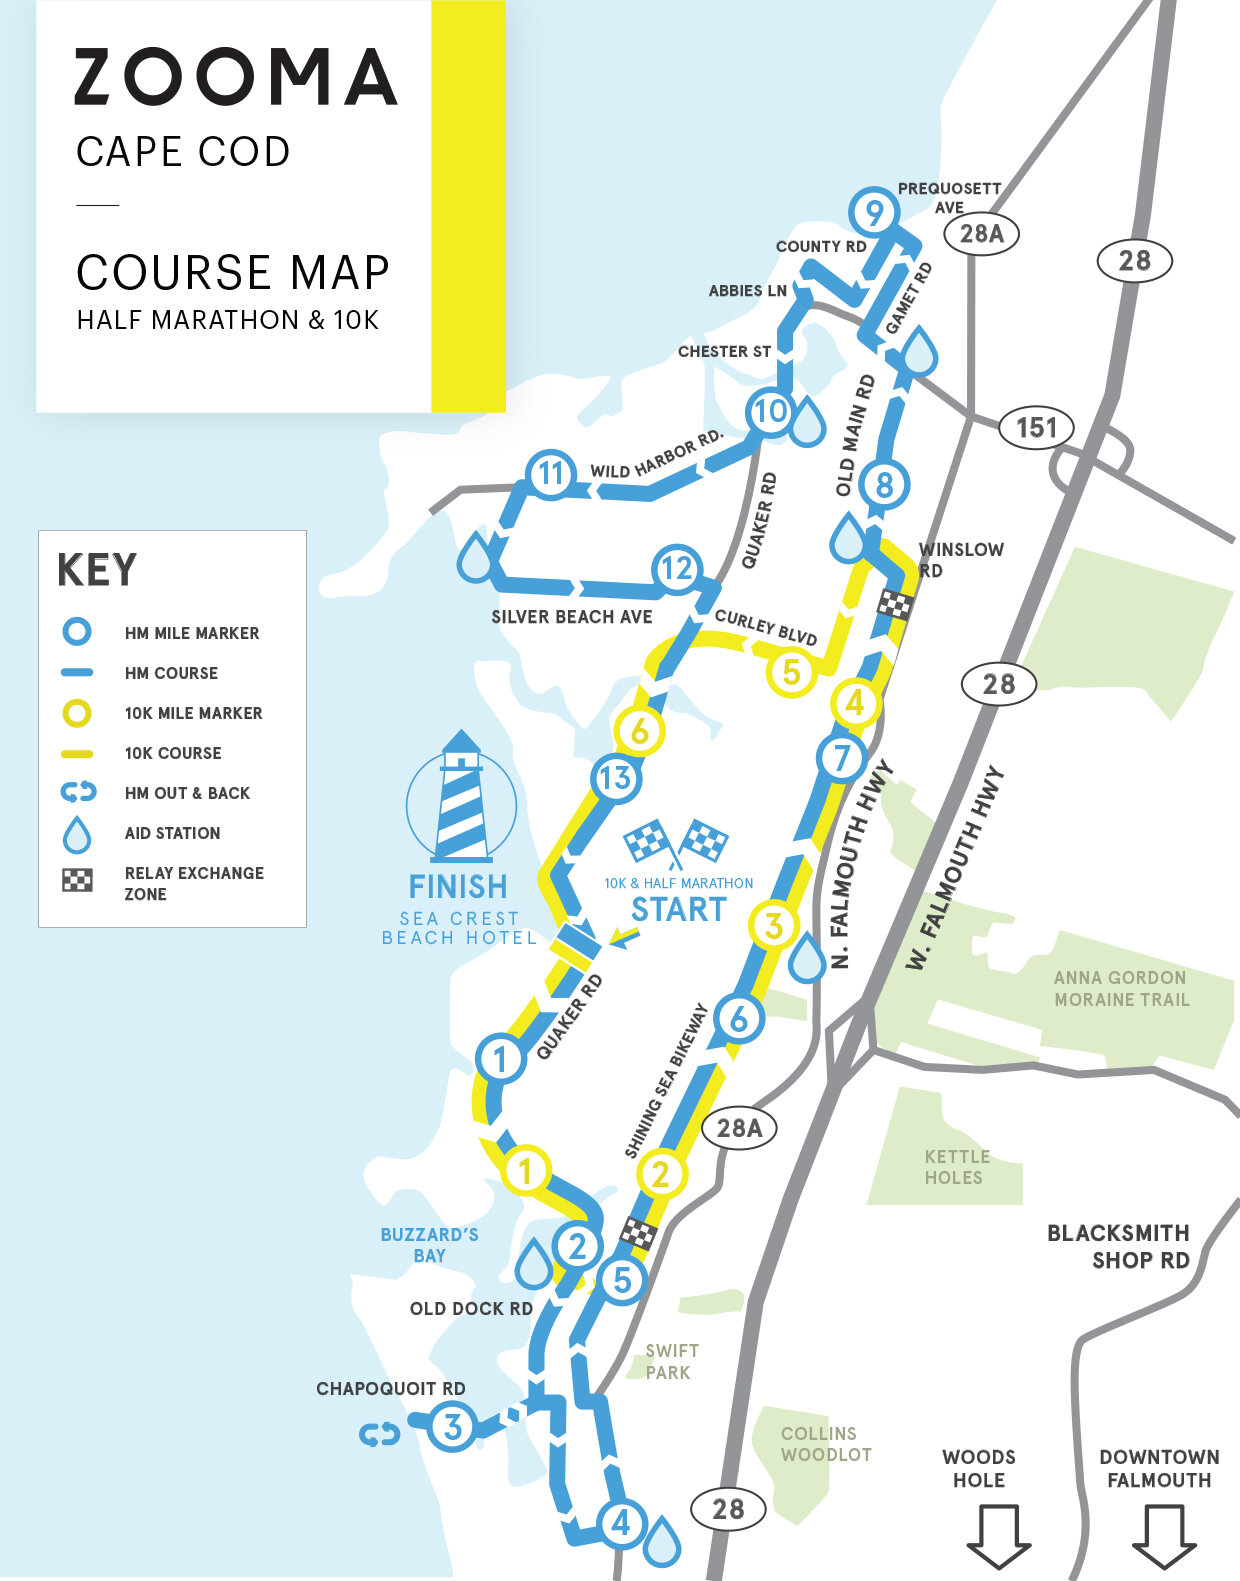 ZOOMA Cape Cod Course Map.jpg